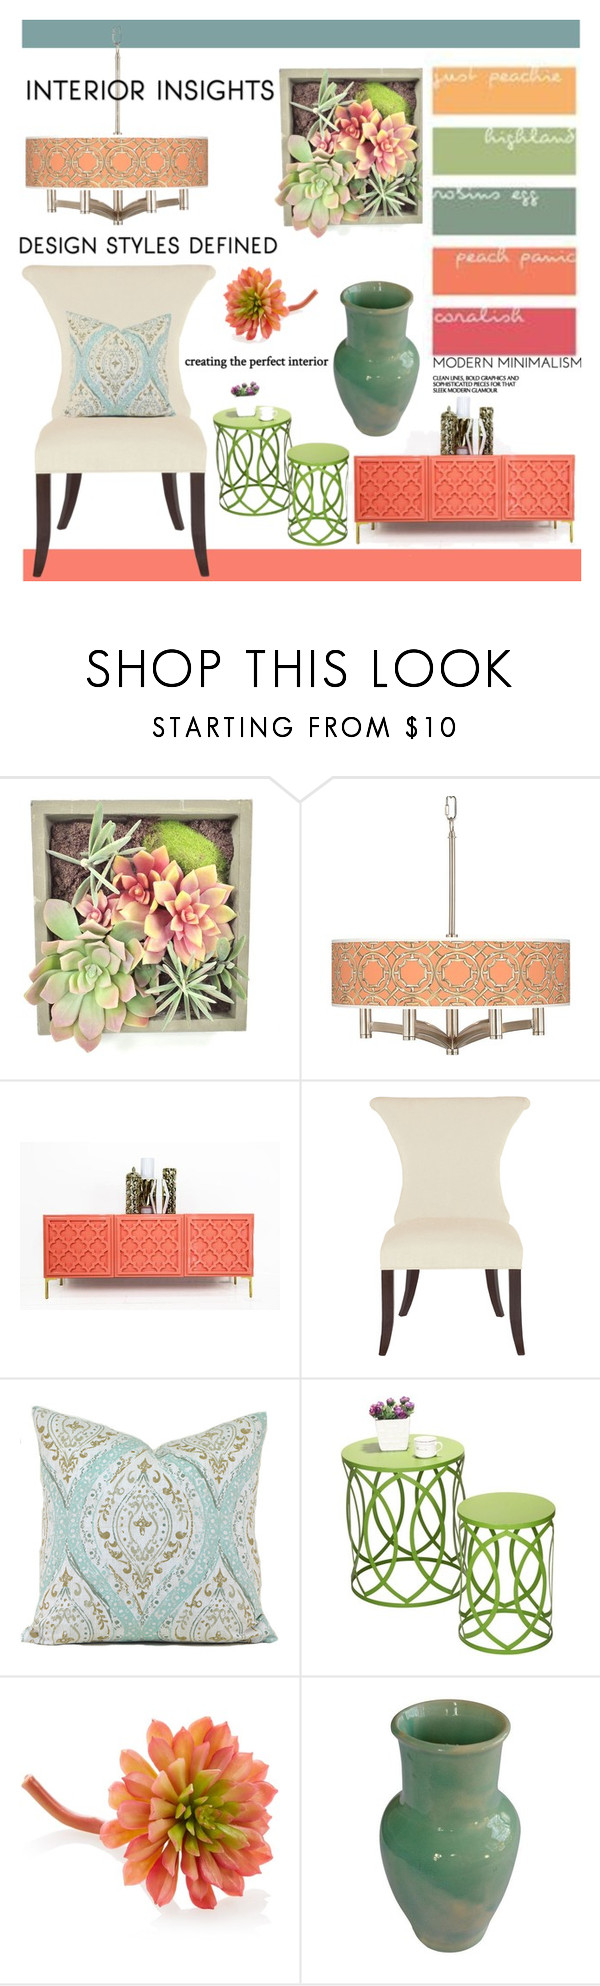 """""""Home Mood Boards"""" by aharcaki ❤ liked on Polyvore featuring interior, interiors, interior design, home, home decor, interior decorating, Gold Eagle, Giclee Glow, Bernhardt and Adeco"""